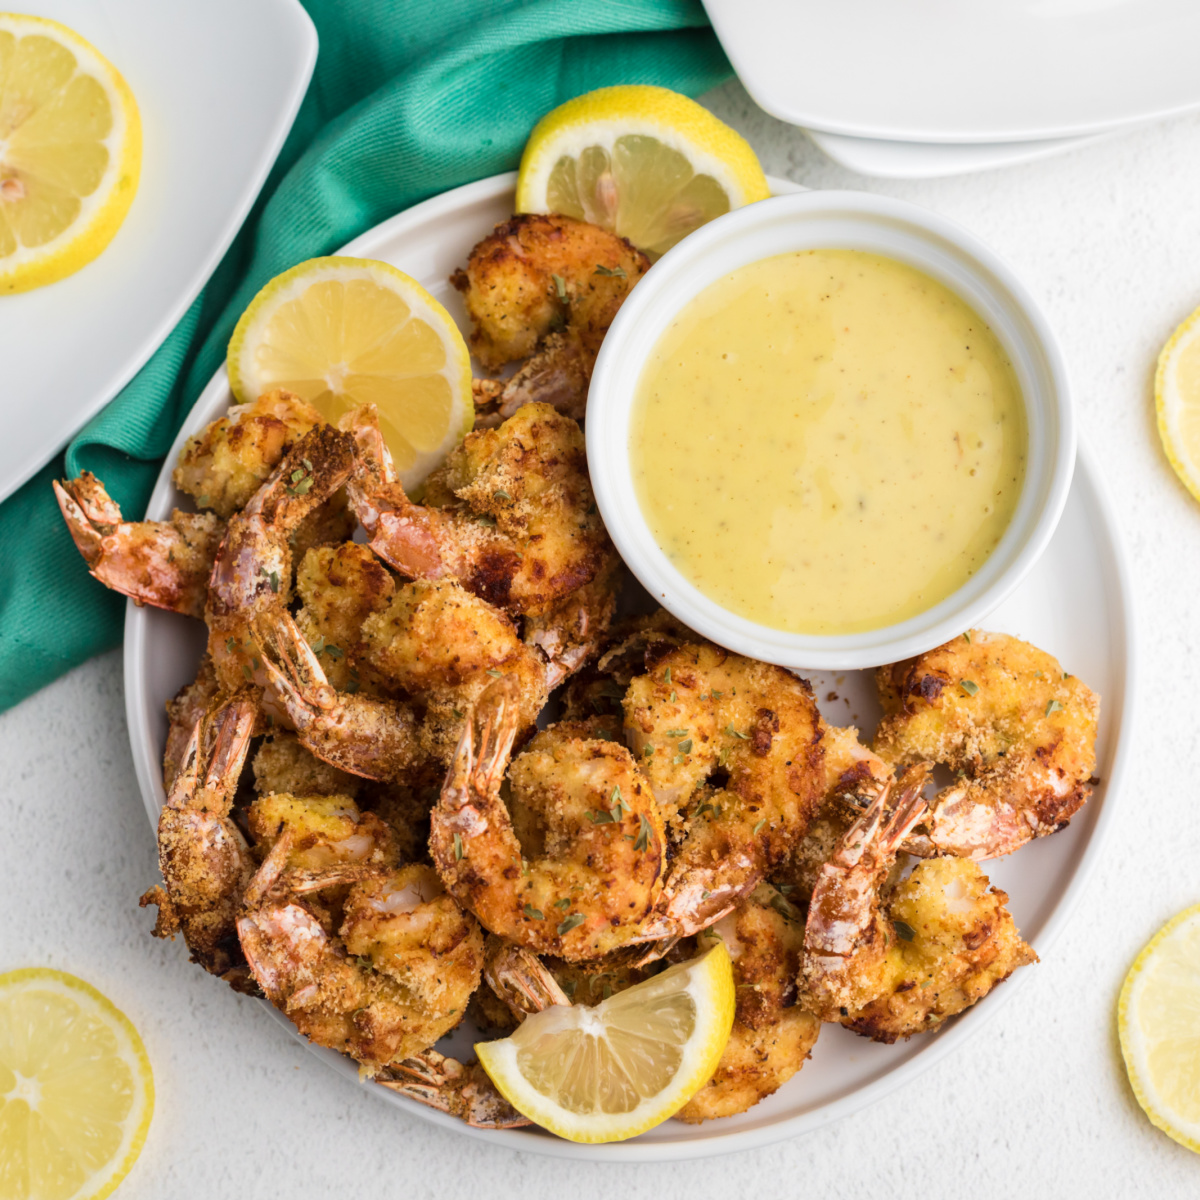 Air Fryer Fried Shrimp with lemon slices and serving sauce on a white plate.